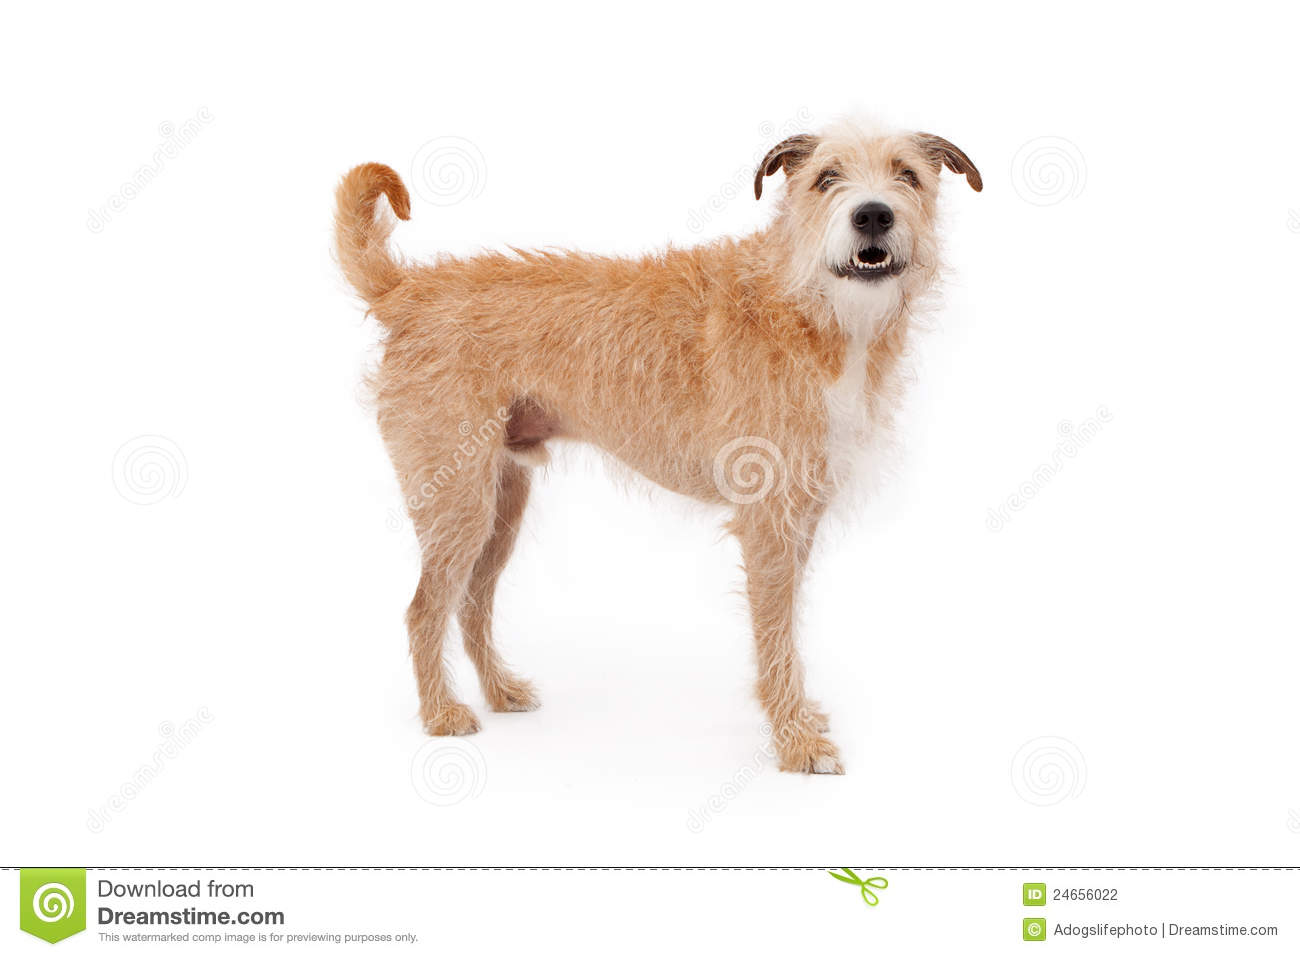 large mixed breed dog with wire hair standing against a white